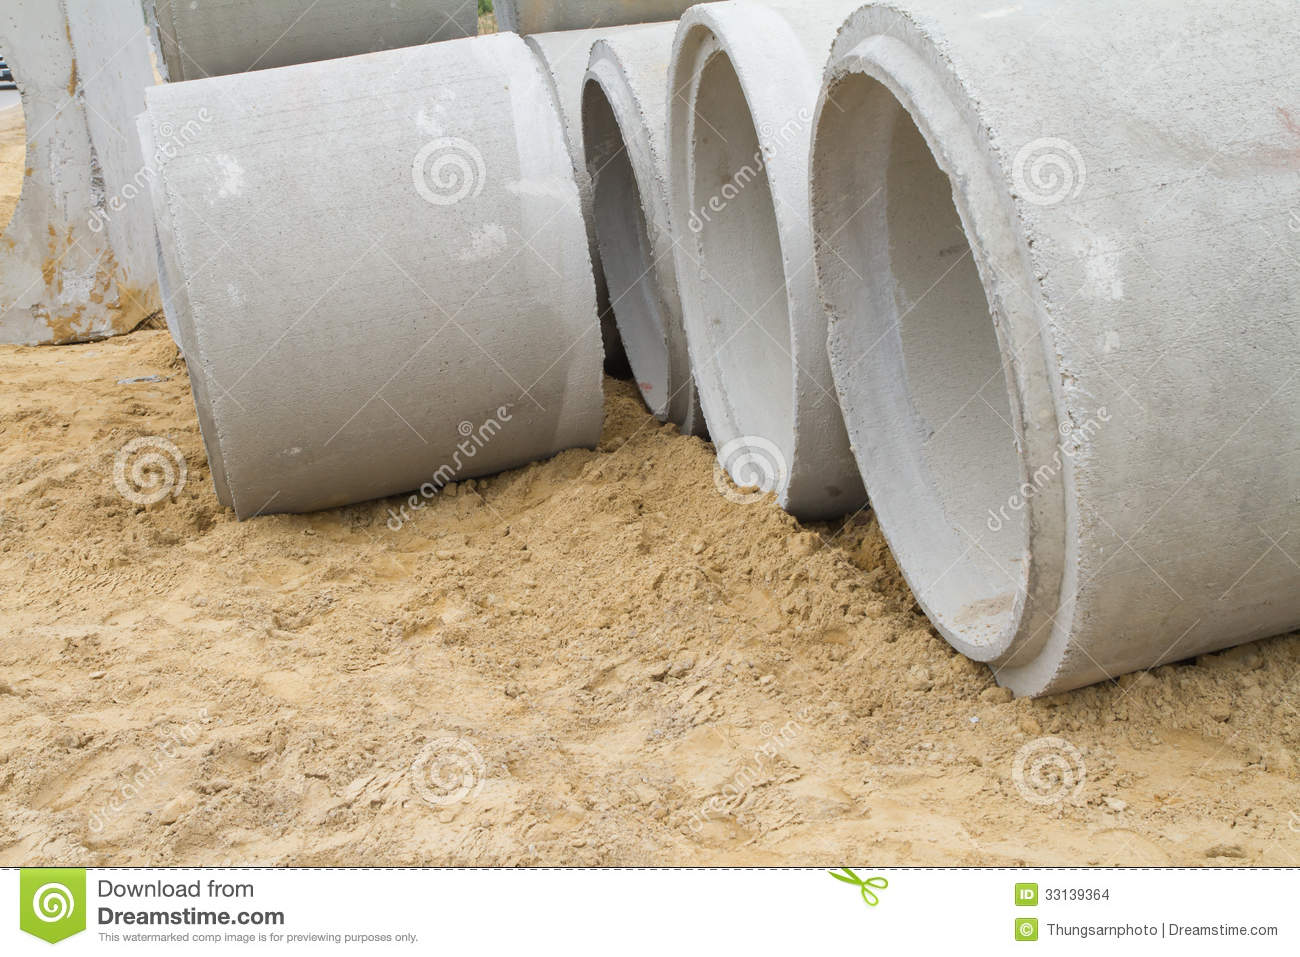 Cement Drain Pipe 24 : Concrete drainage pipe on a construction site stock images